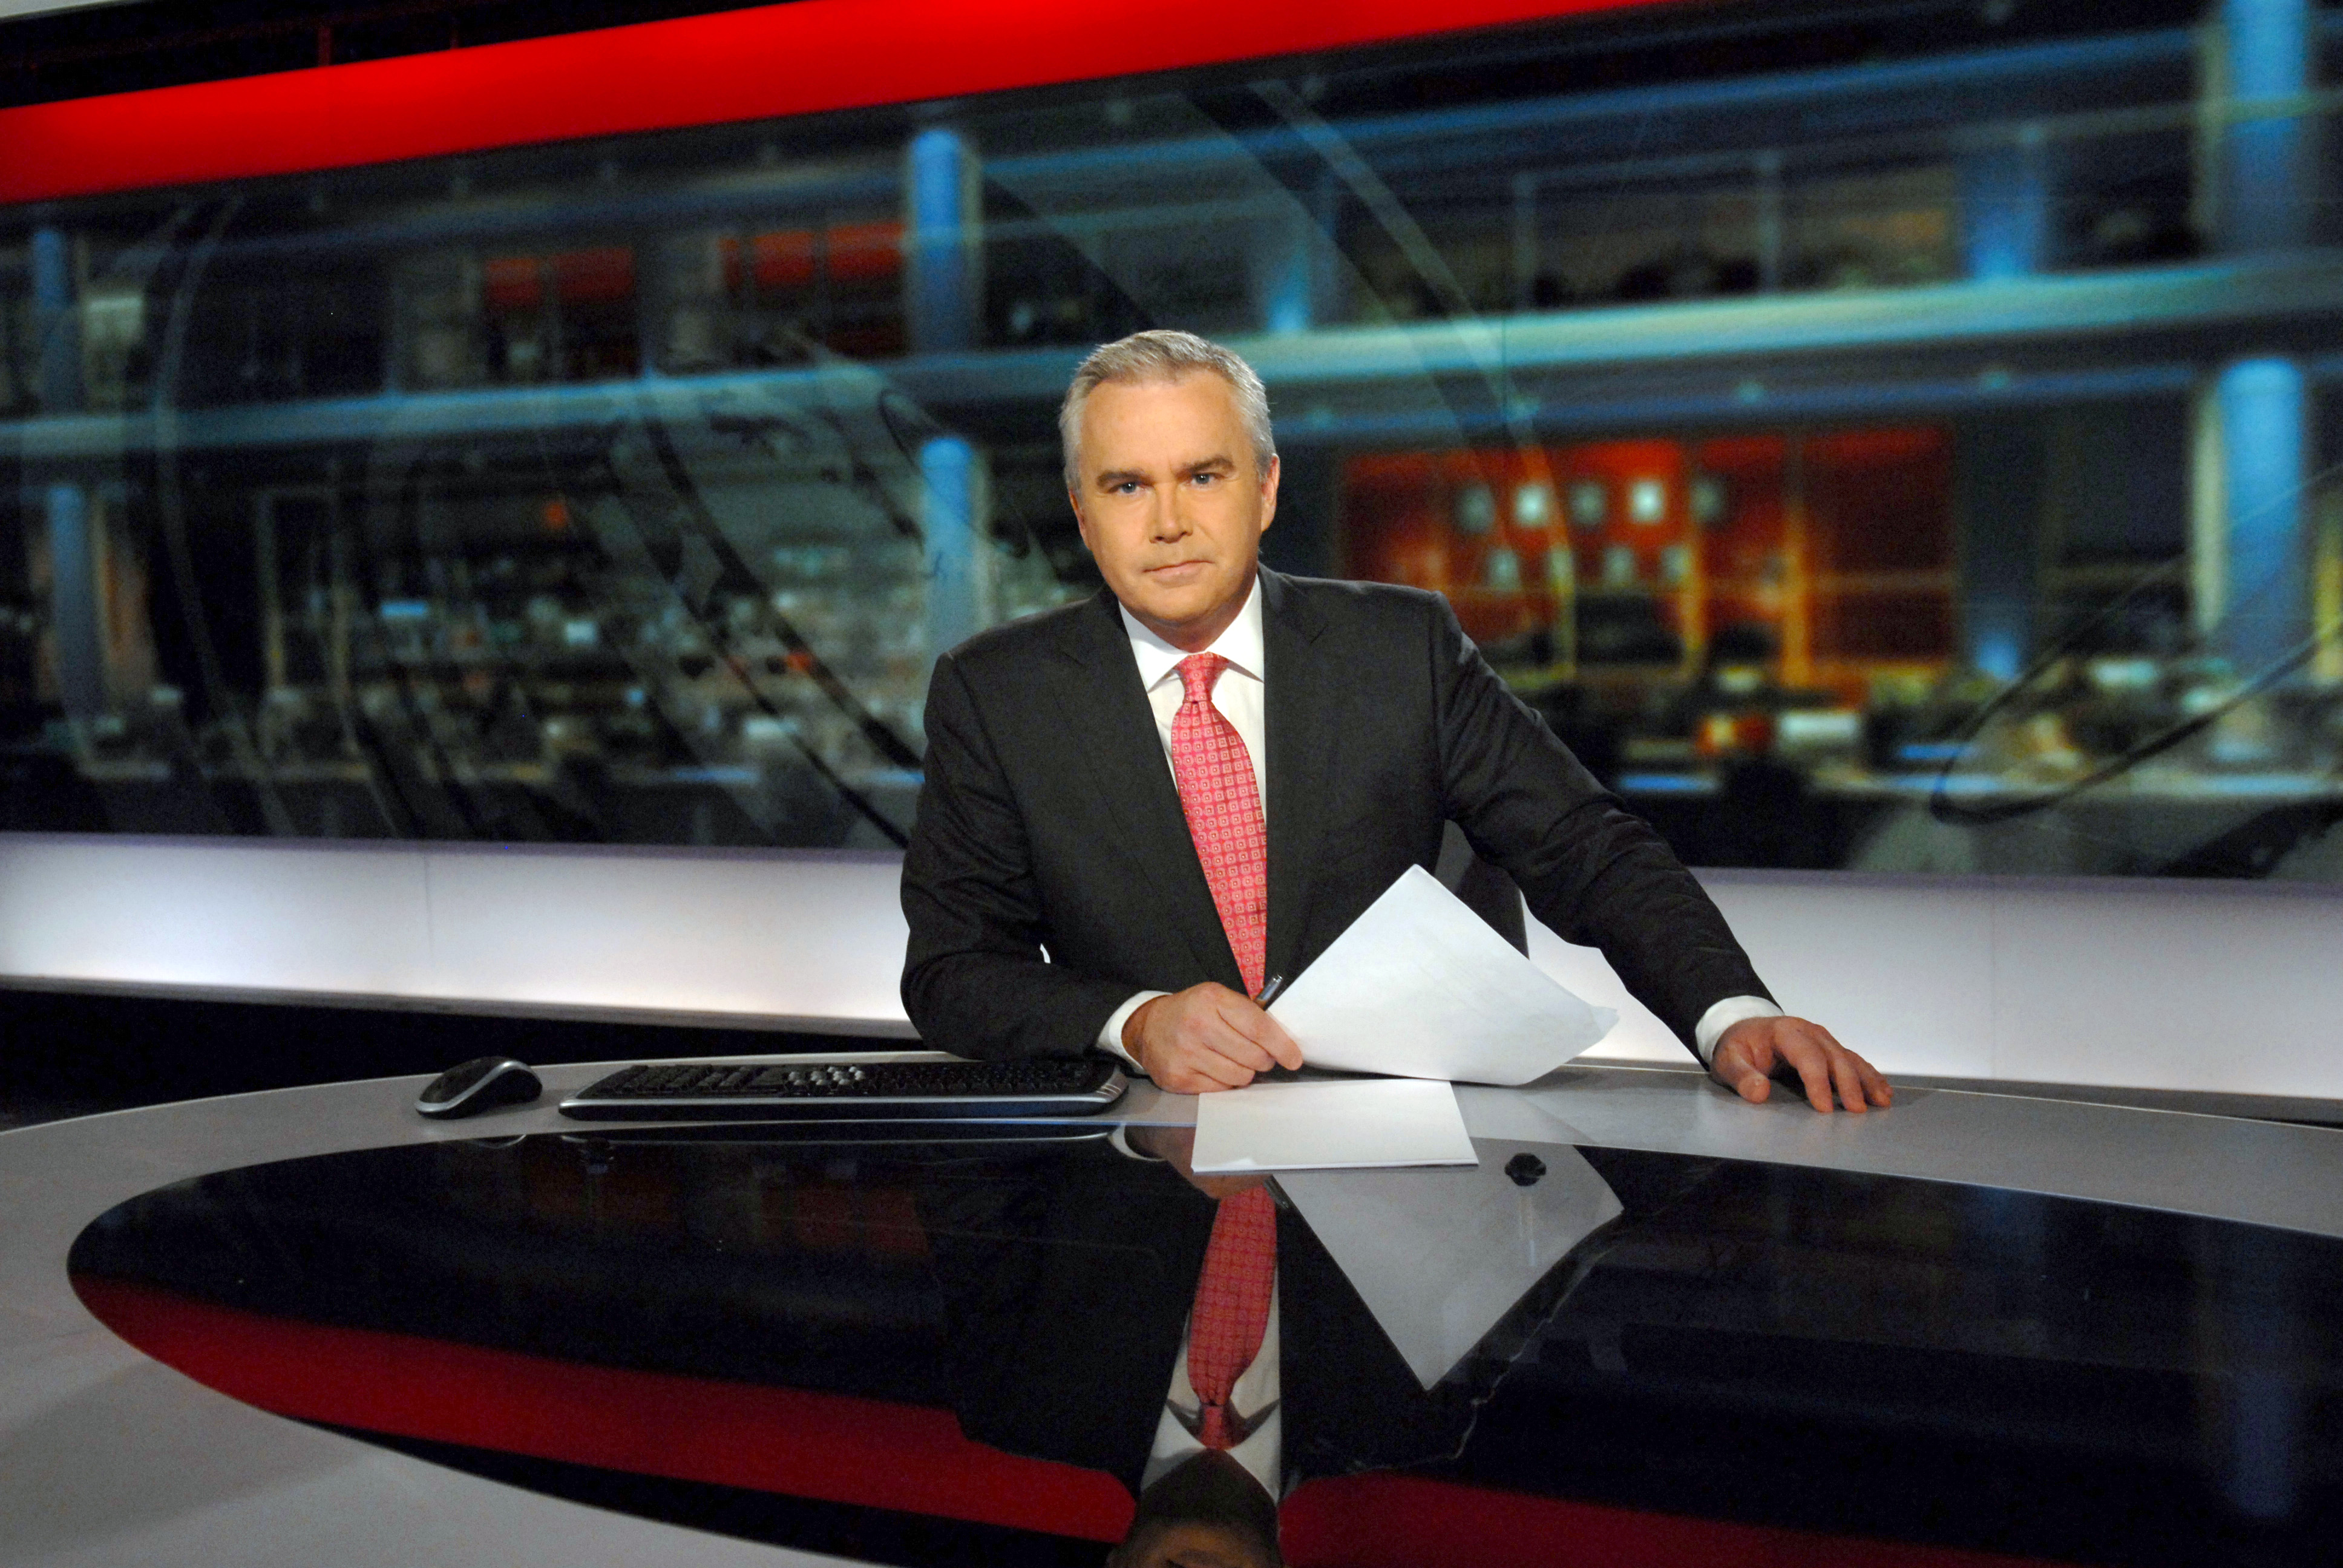 Huw Edwards in N9 news studio for the Ten O'Clock news